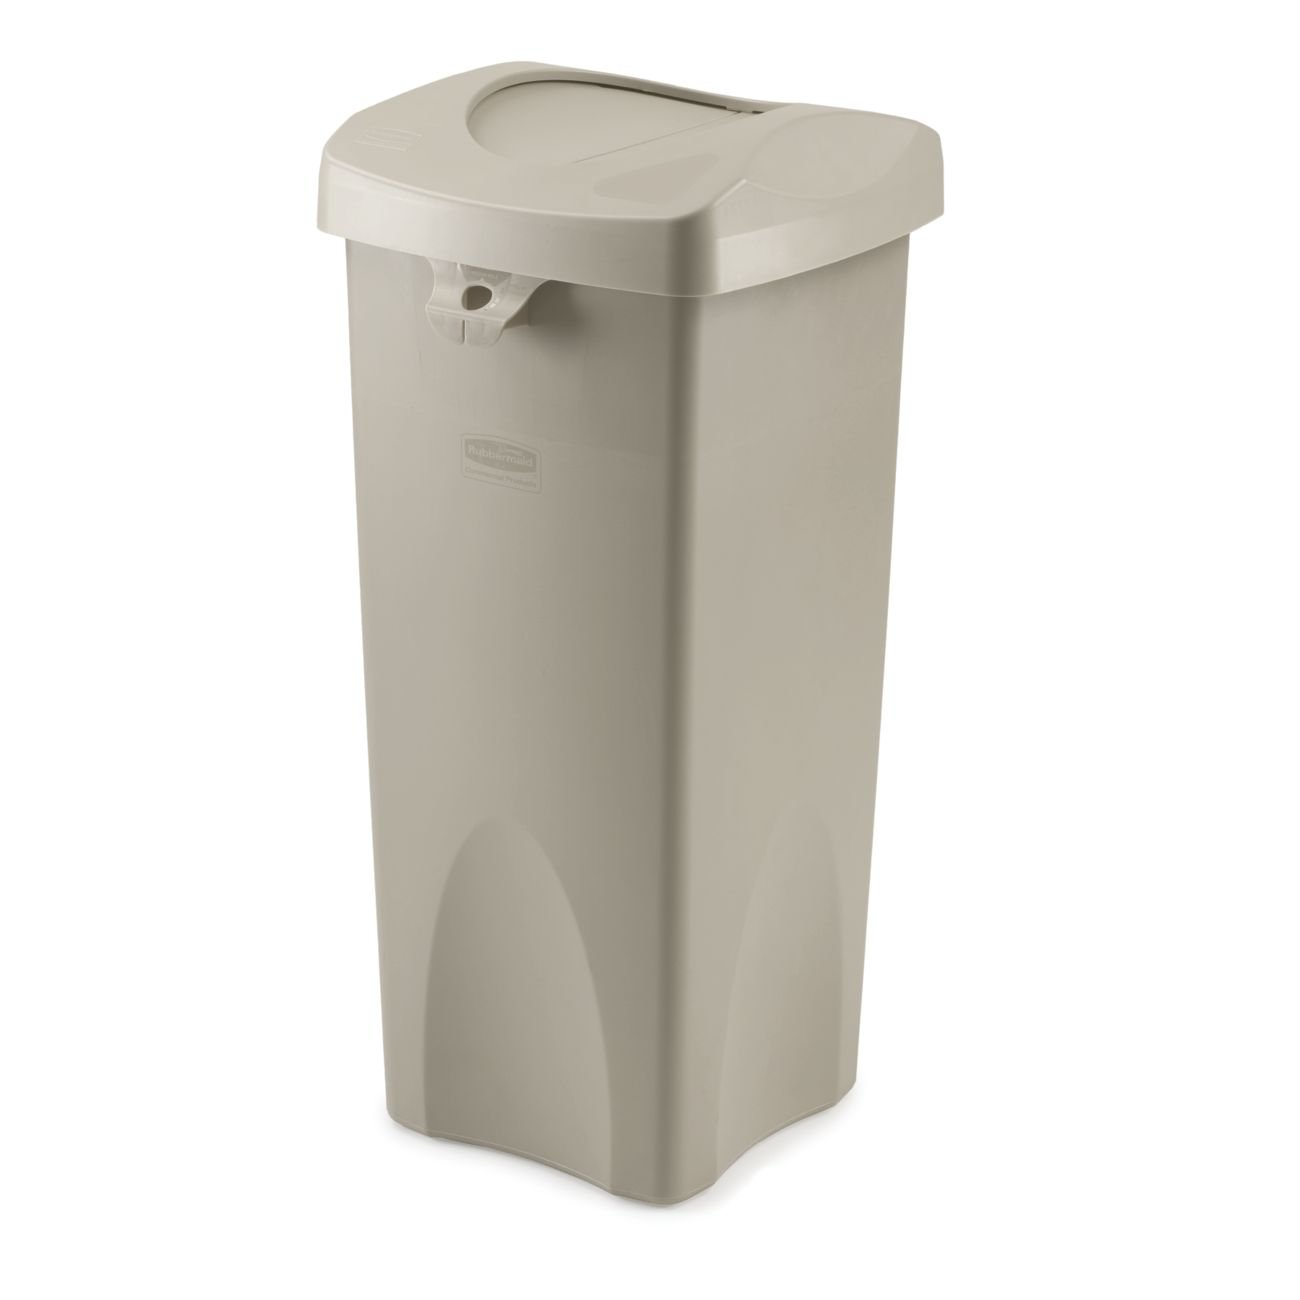 Rubbermaidmercial 23gallon Untouchable Trash Can With Swing Lidbo,  Rectangular, 168inch Width X 16inch Depth X 341inch Height,